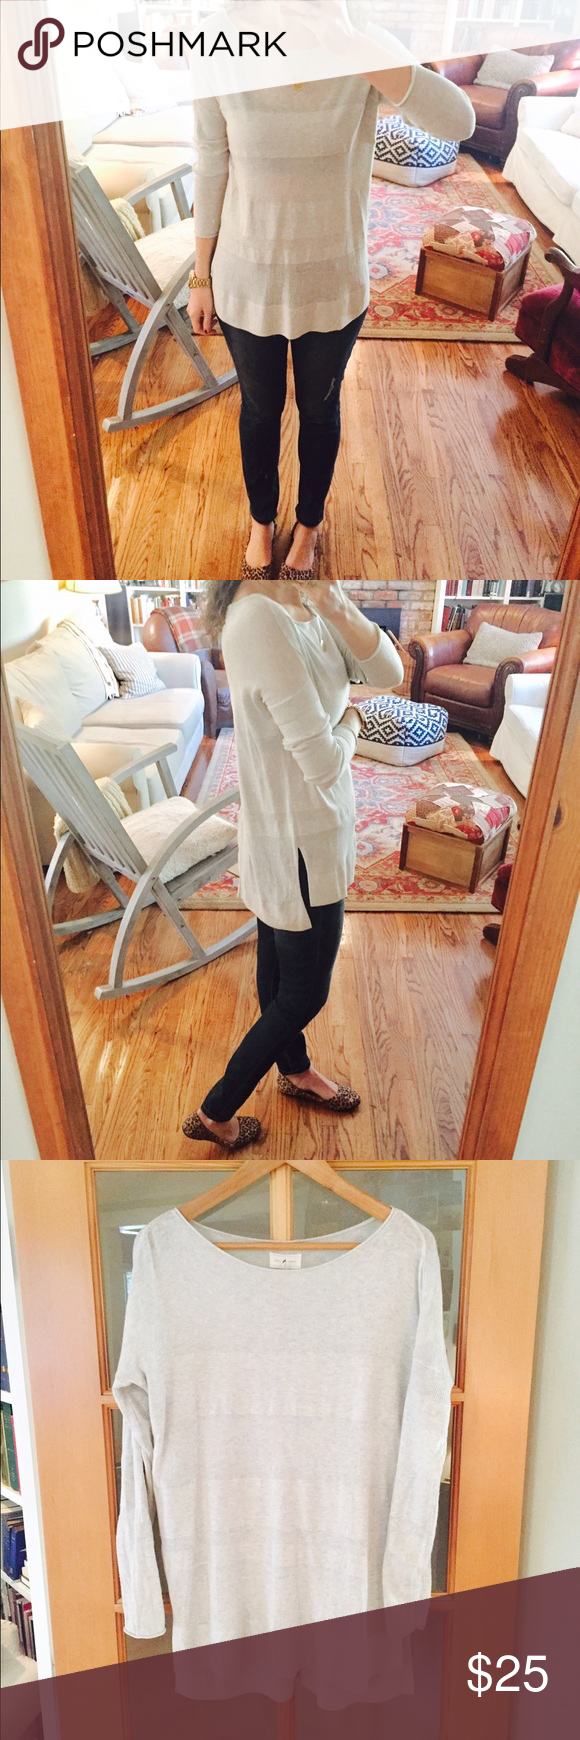 Lou & Grey tunic sweater Light gray with subtle striping. Boatneck. Hi-low hem. Barely worn. From Winter 2016 line. Lou & Grey Sweaters